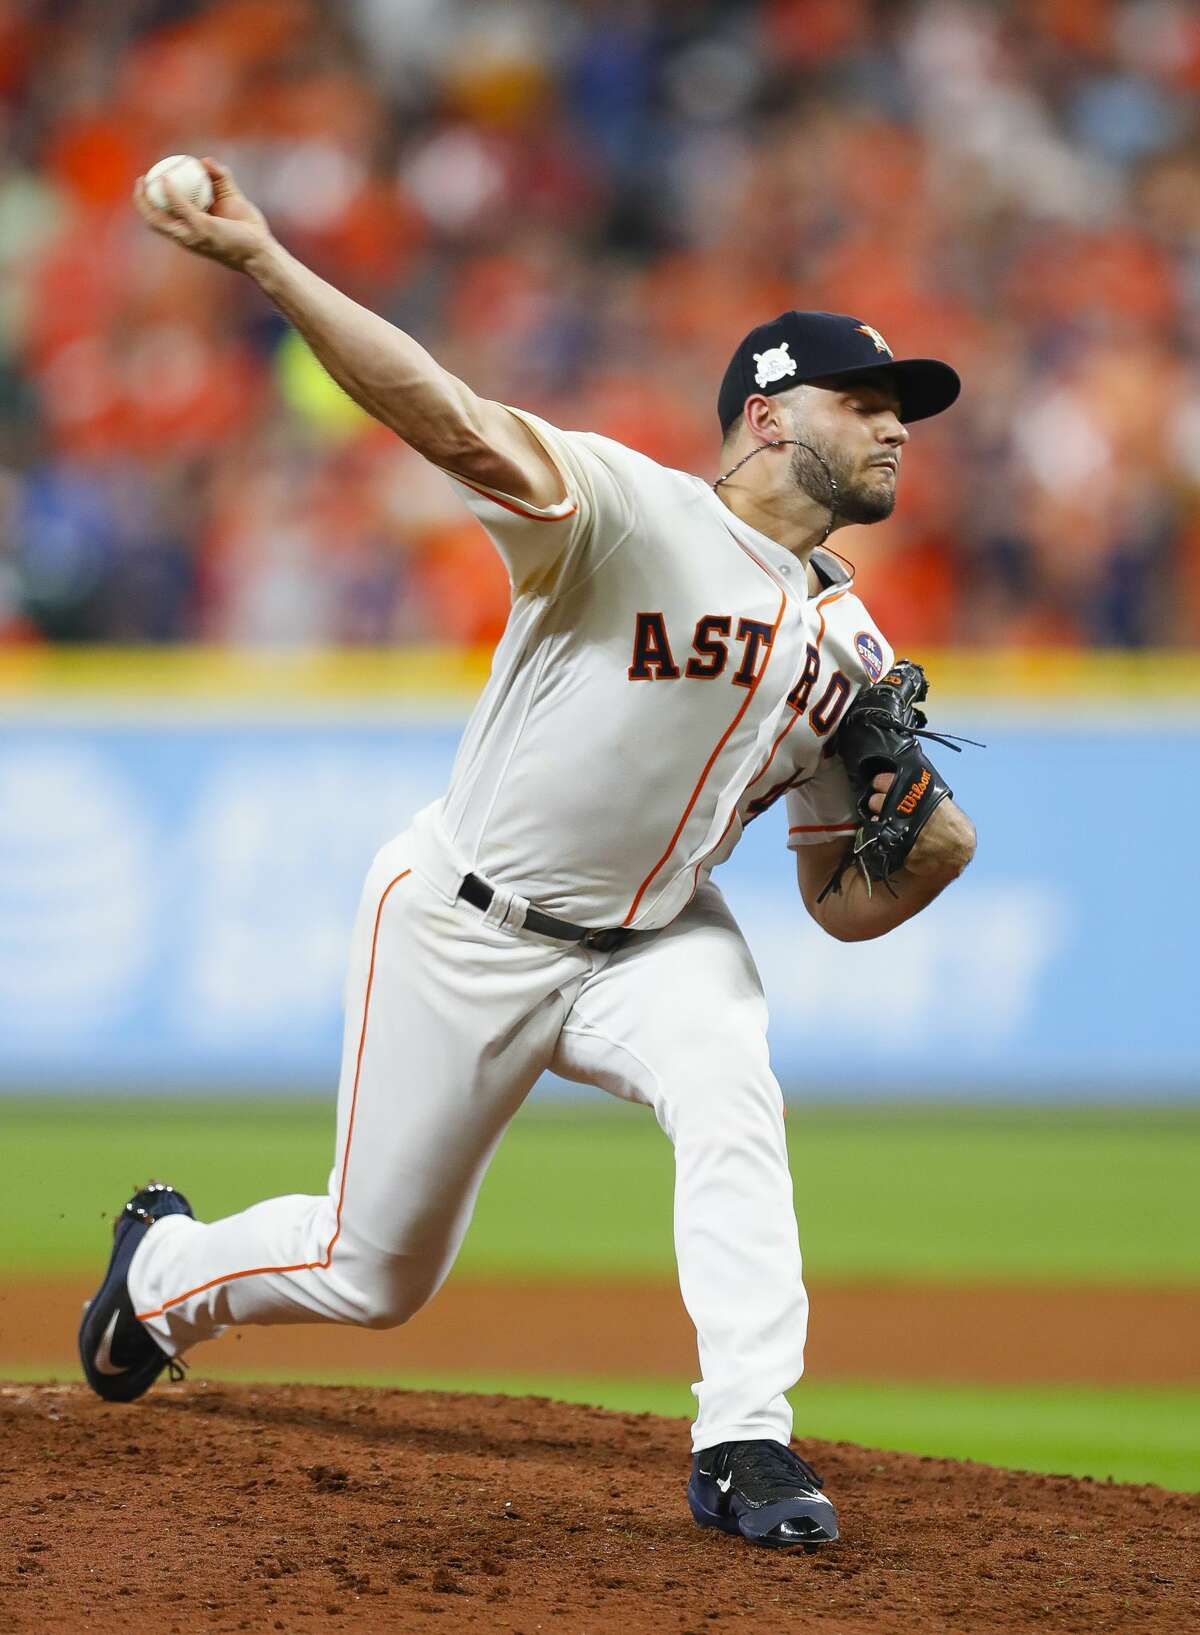 Houston Astros pitcher Lance McCullers Jr. (43) pitches during the sixth inning of Game 7 of the ALCS at Minute Maid Park on Saturday, Oct. 21, 2017, in Houston.